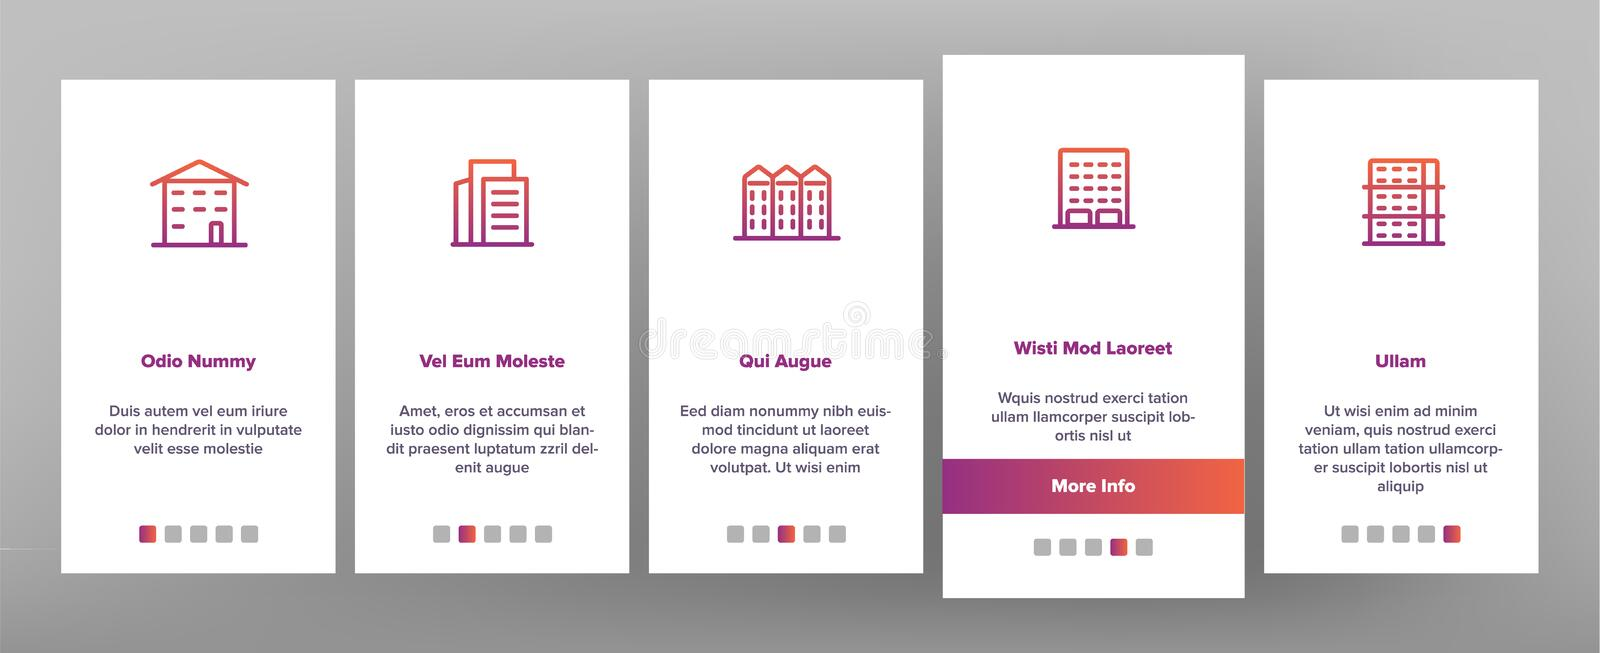 Dwelling House, Condo Vector Onboarding Mobile App Page Screen. Dwelling House, Condo Onboarding Mobile App Page Screen Vector. Condo, Apartment Buildings vector illustration